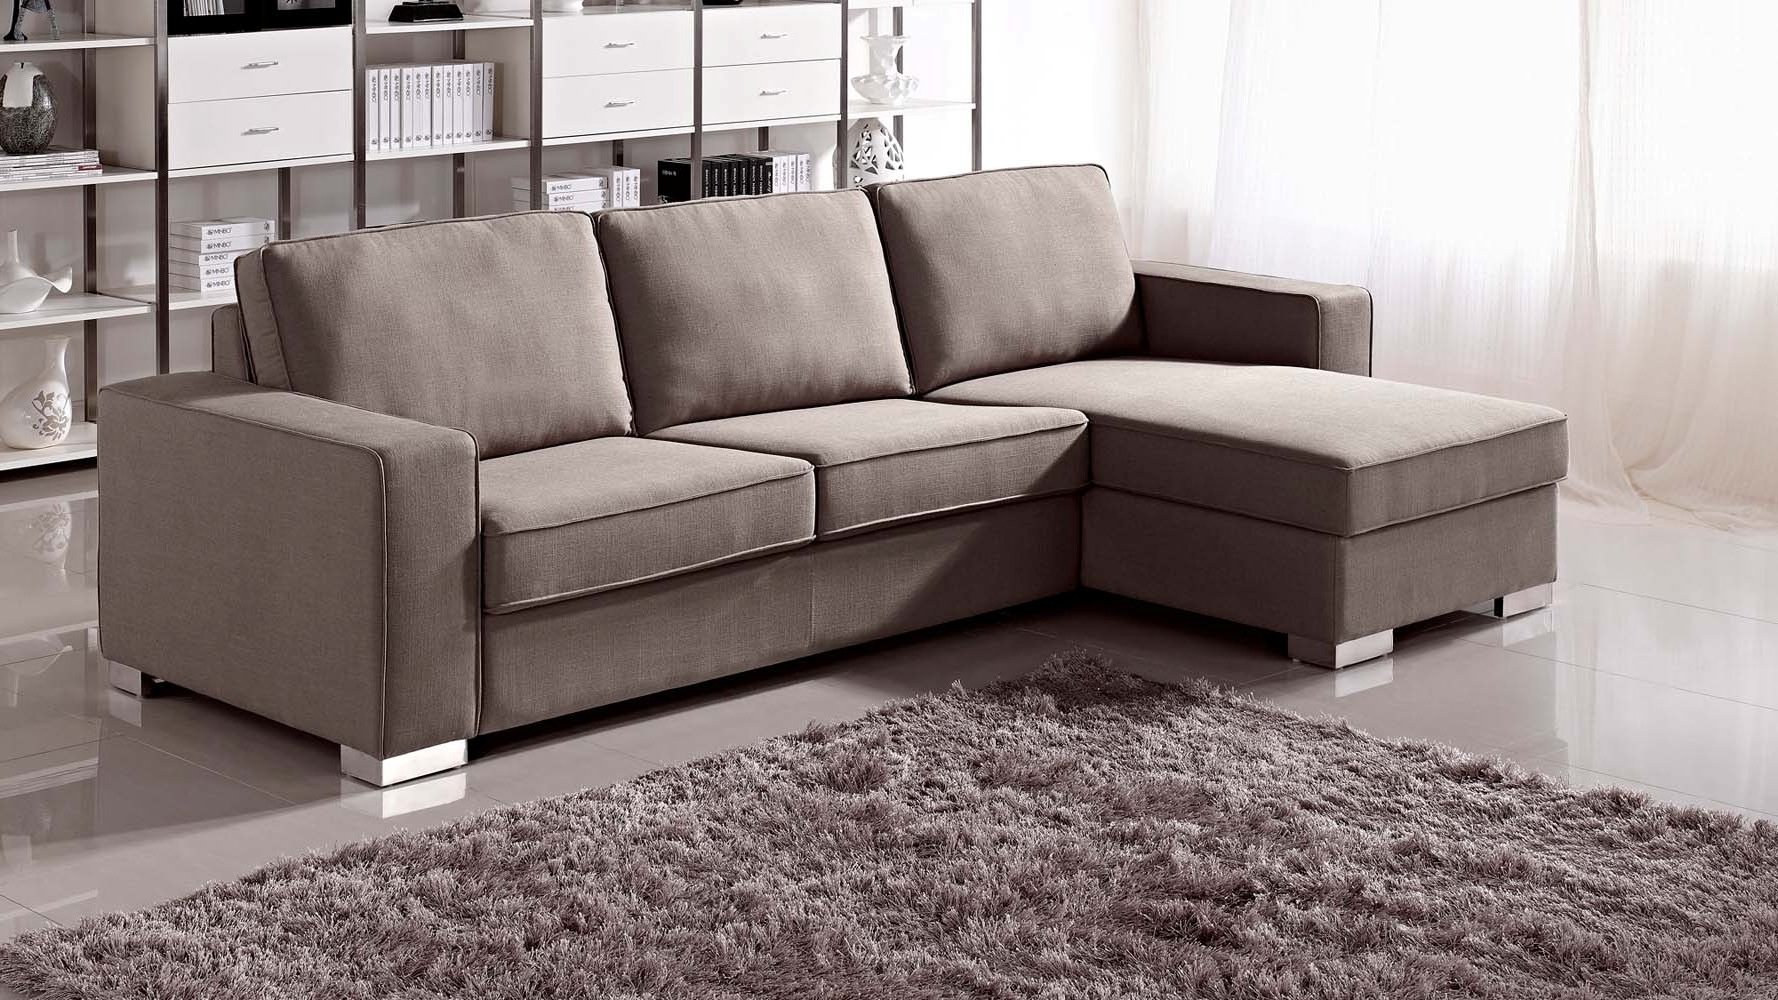 Innovative Sofa Sleeper Sectionals Beautiful Interior Design Style With Regard To 2018 L Shaped Couches With Chaise (View 7 of 15)